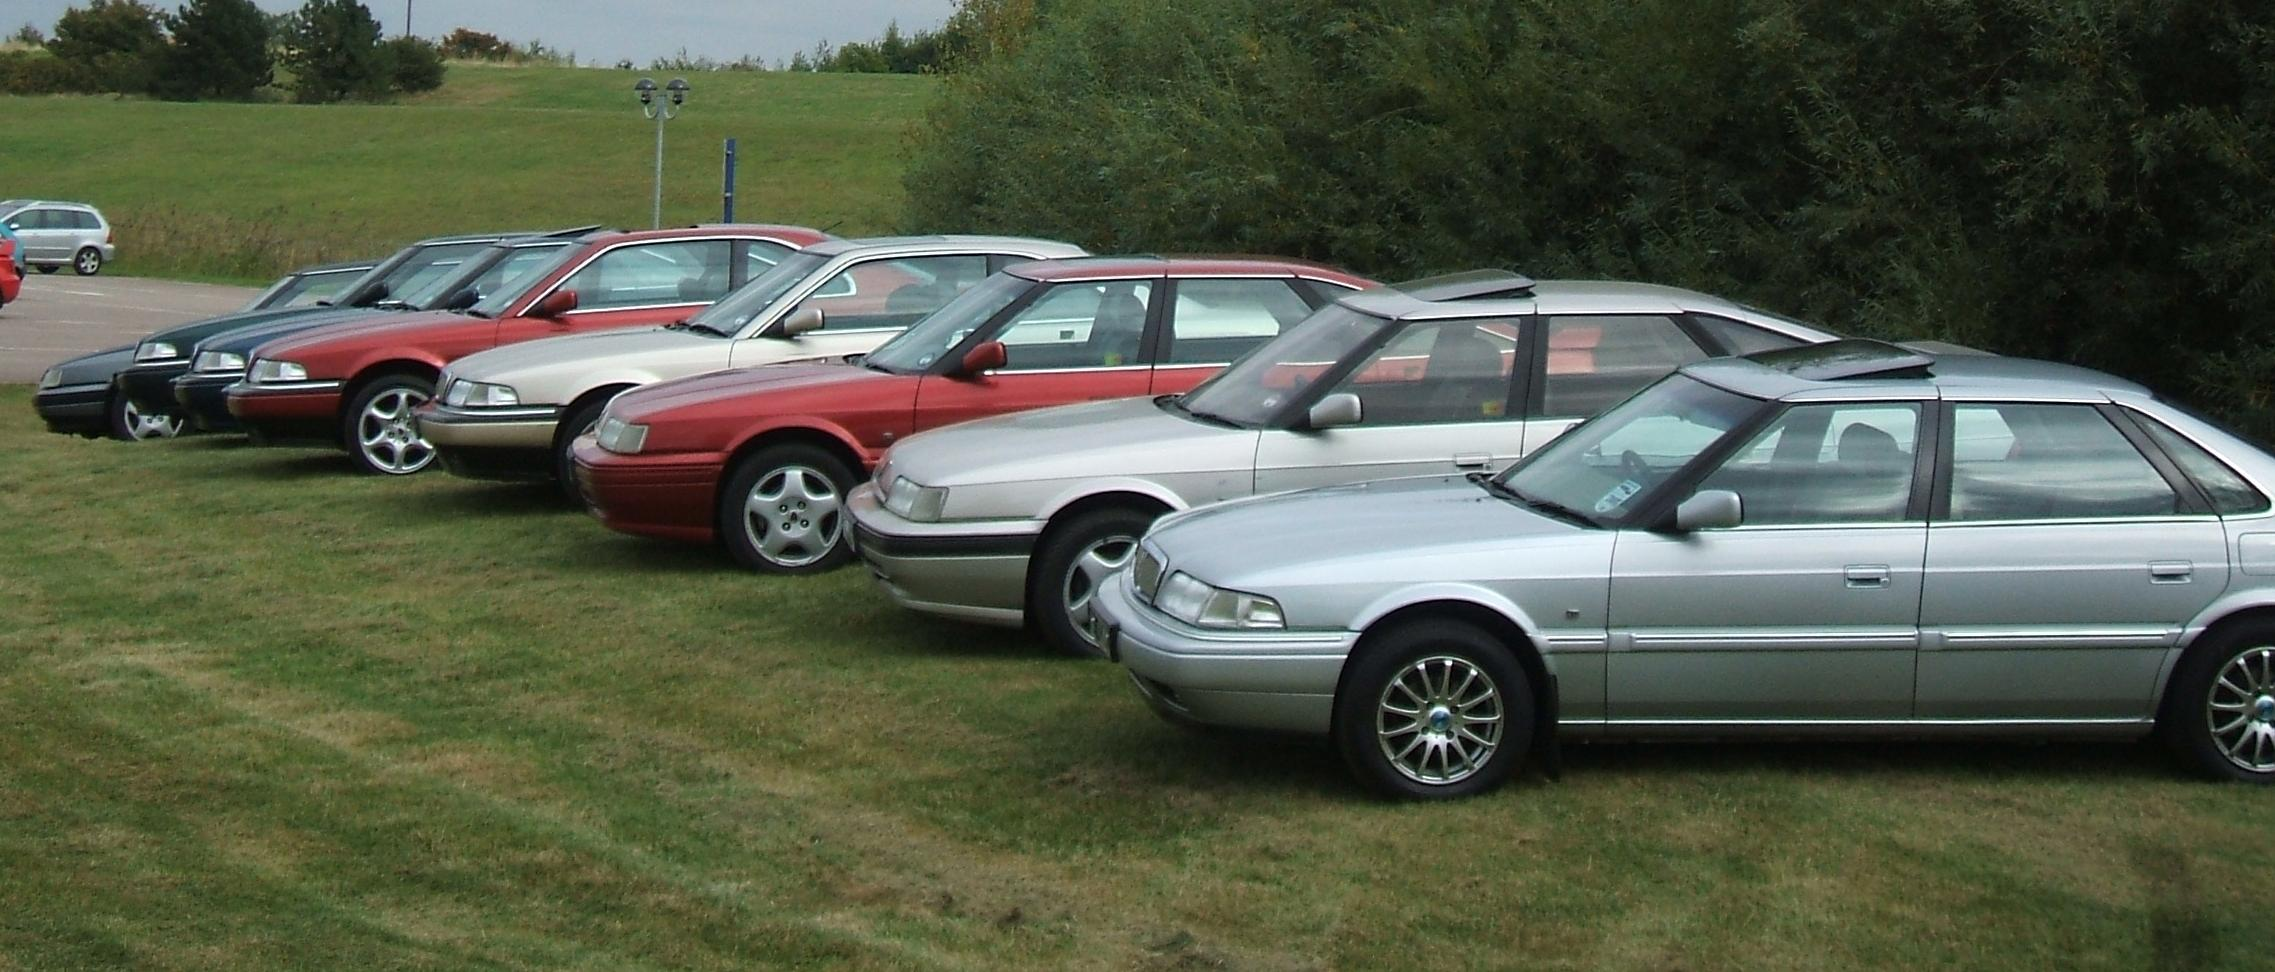 rover 800 seriess